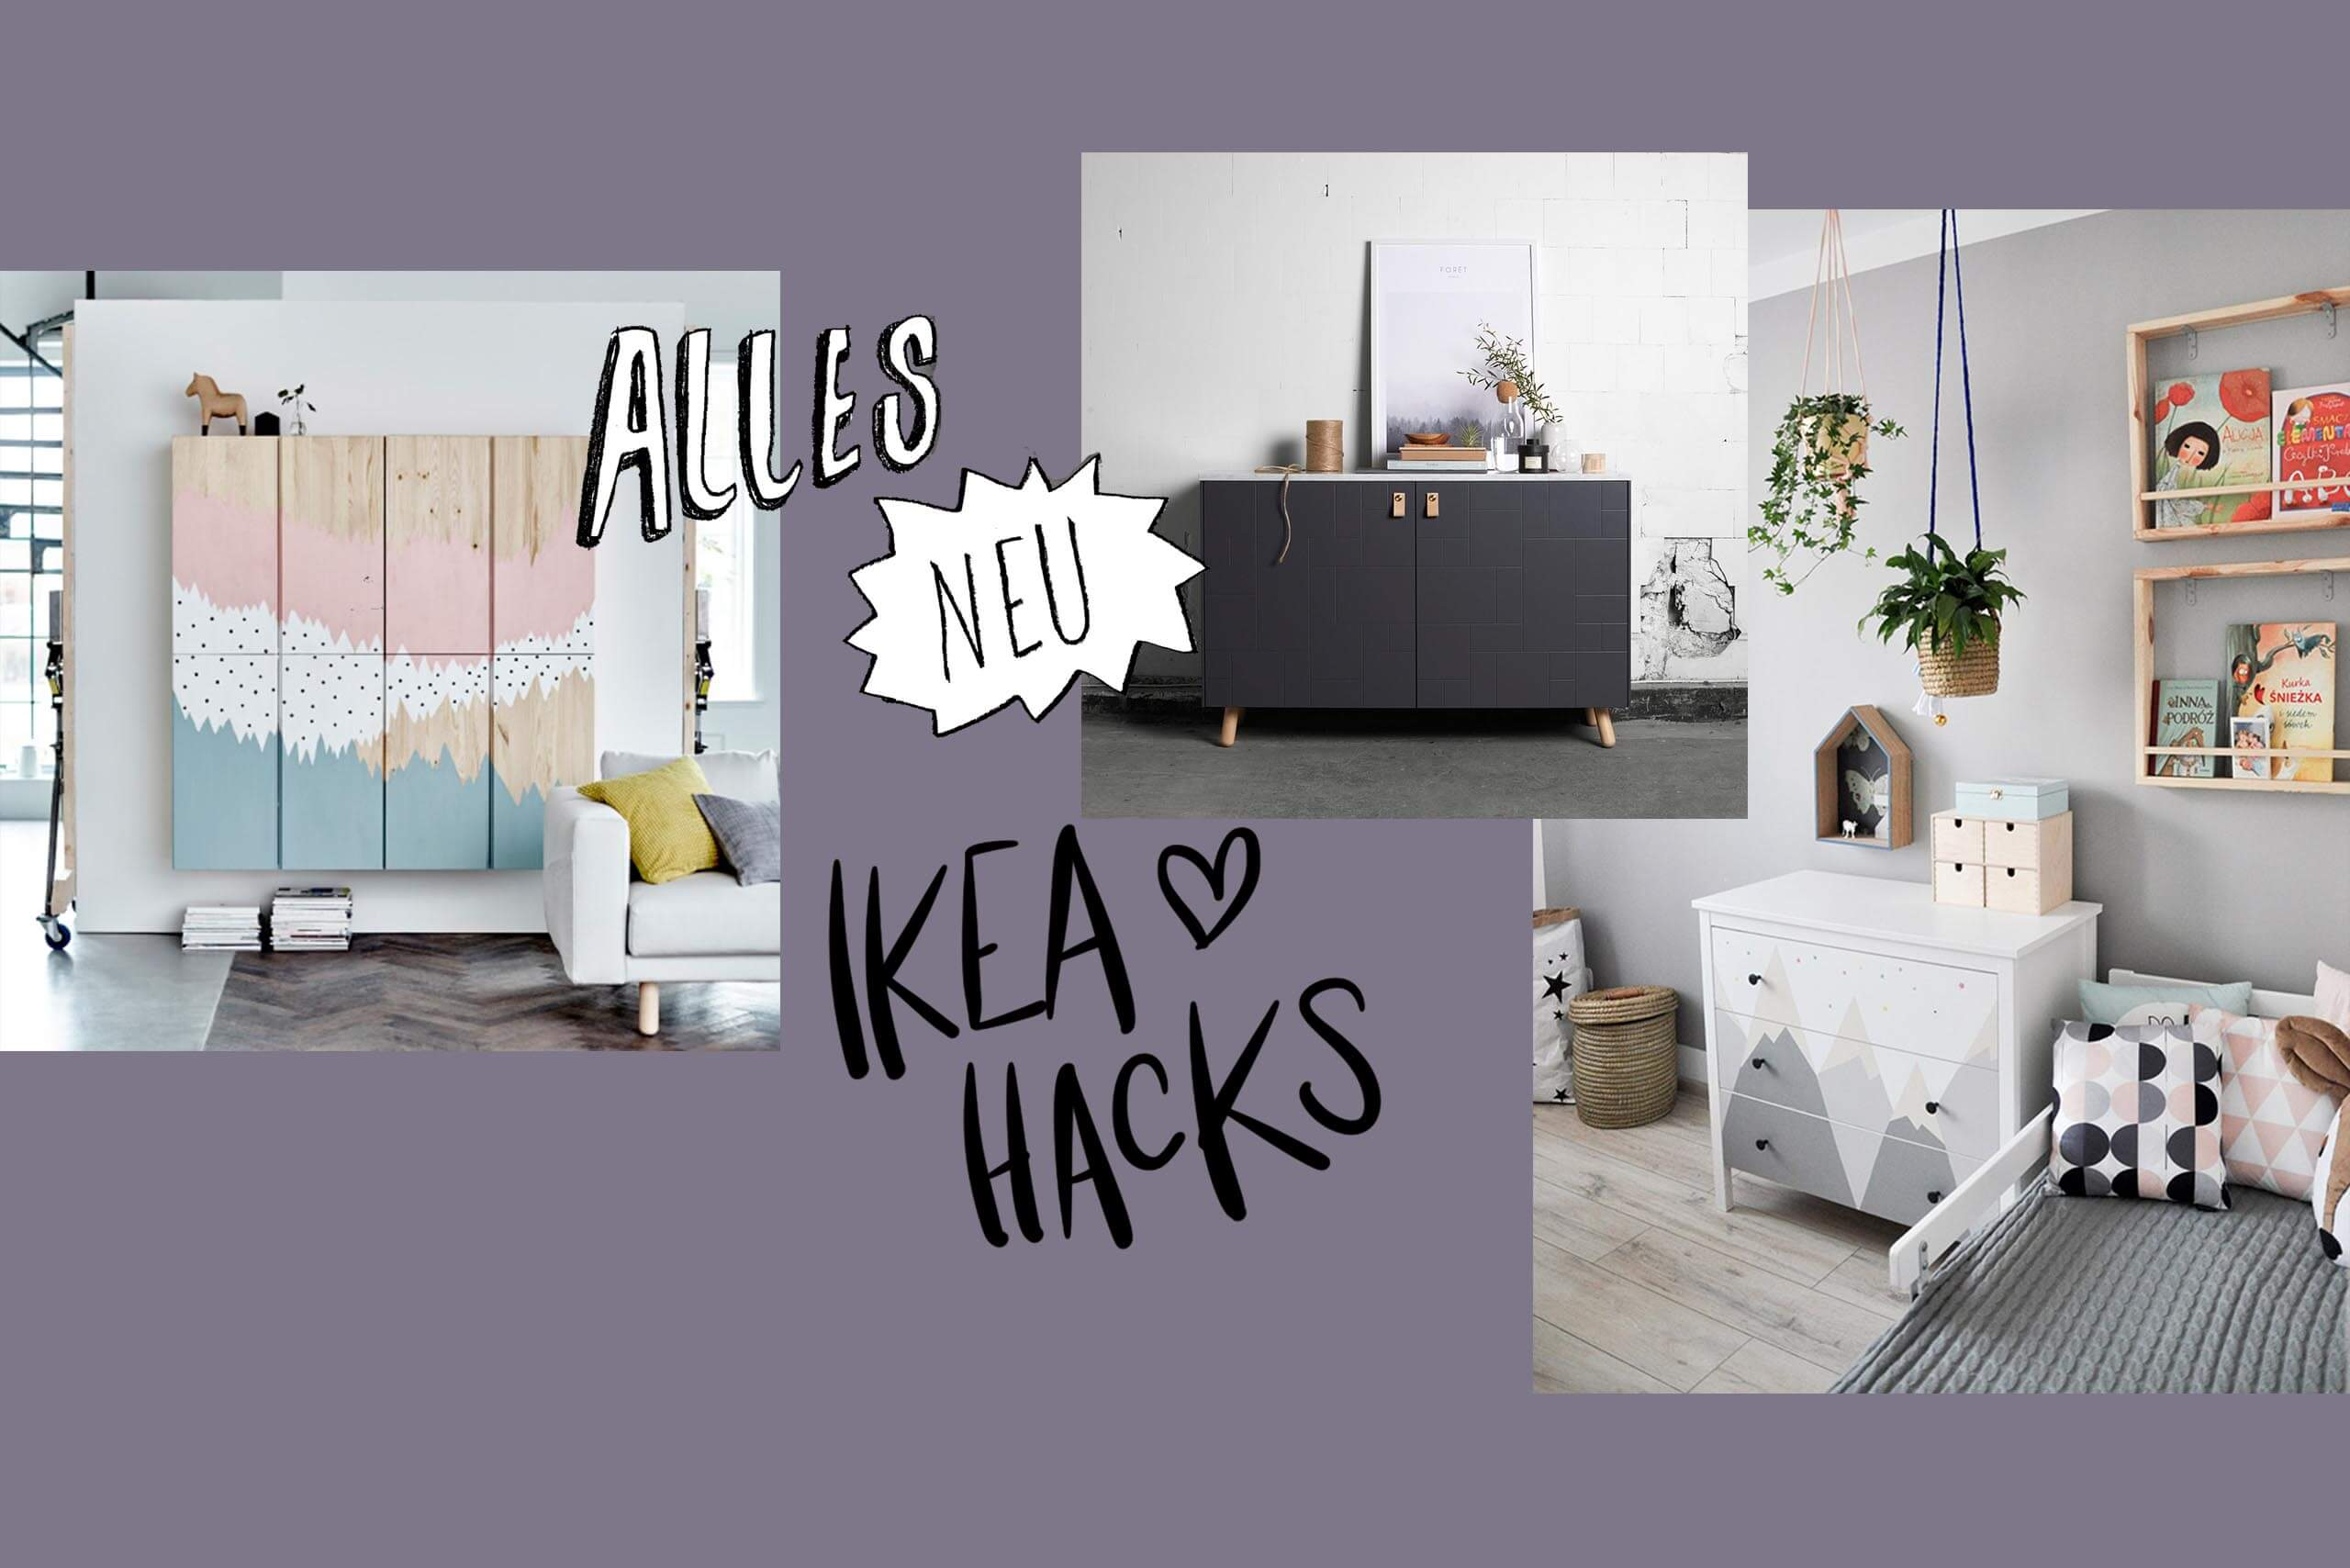 update die 11 besten ikea hacks im netz newniq interior blog design blog. Black Bedroom Furniture Sets. Home Design Ideas